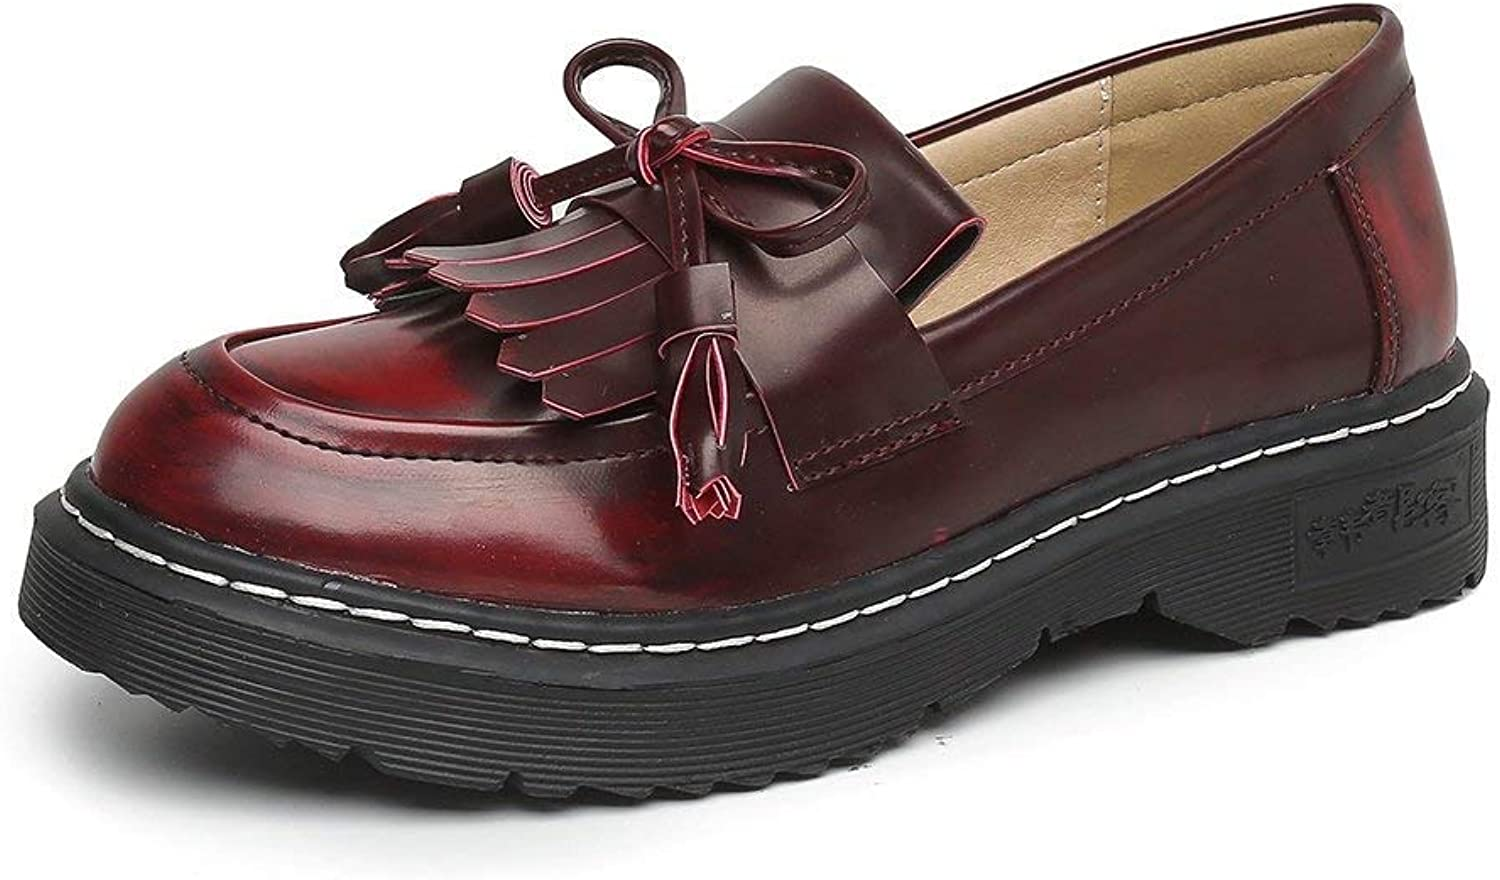 A-LING Womens Leather Slip on Flat Oxfords shoes Fringe Low Heel Loafers shoes